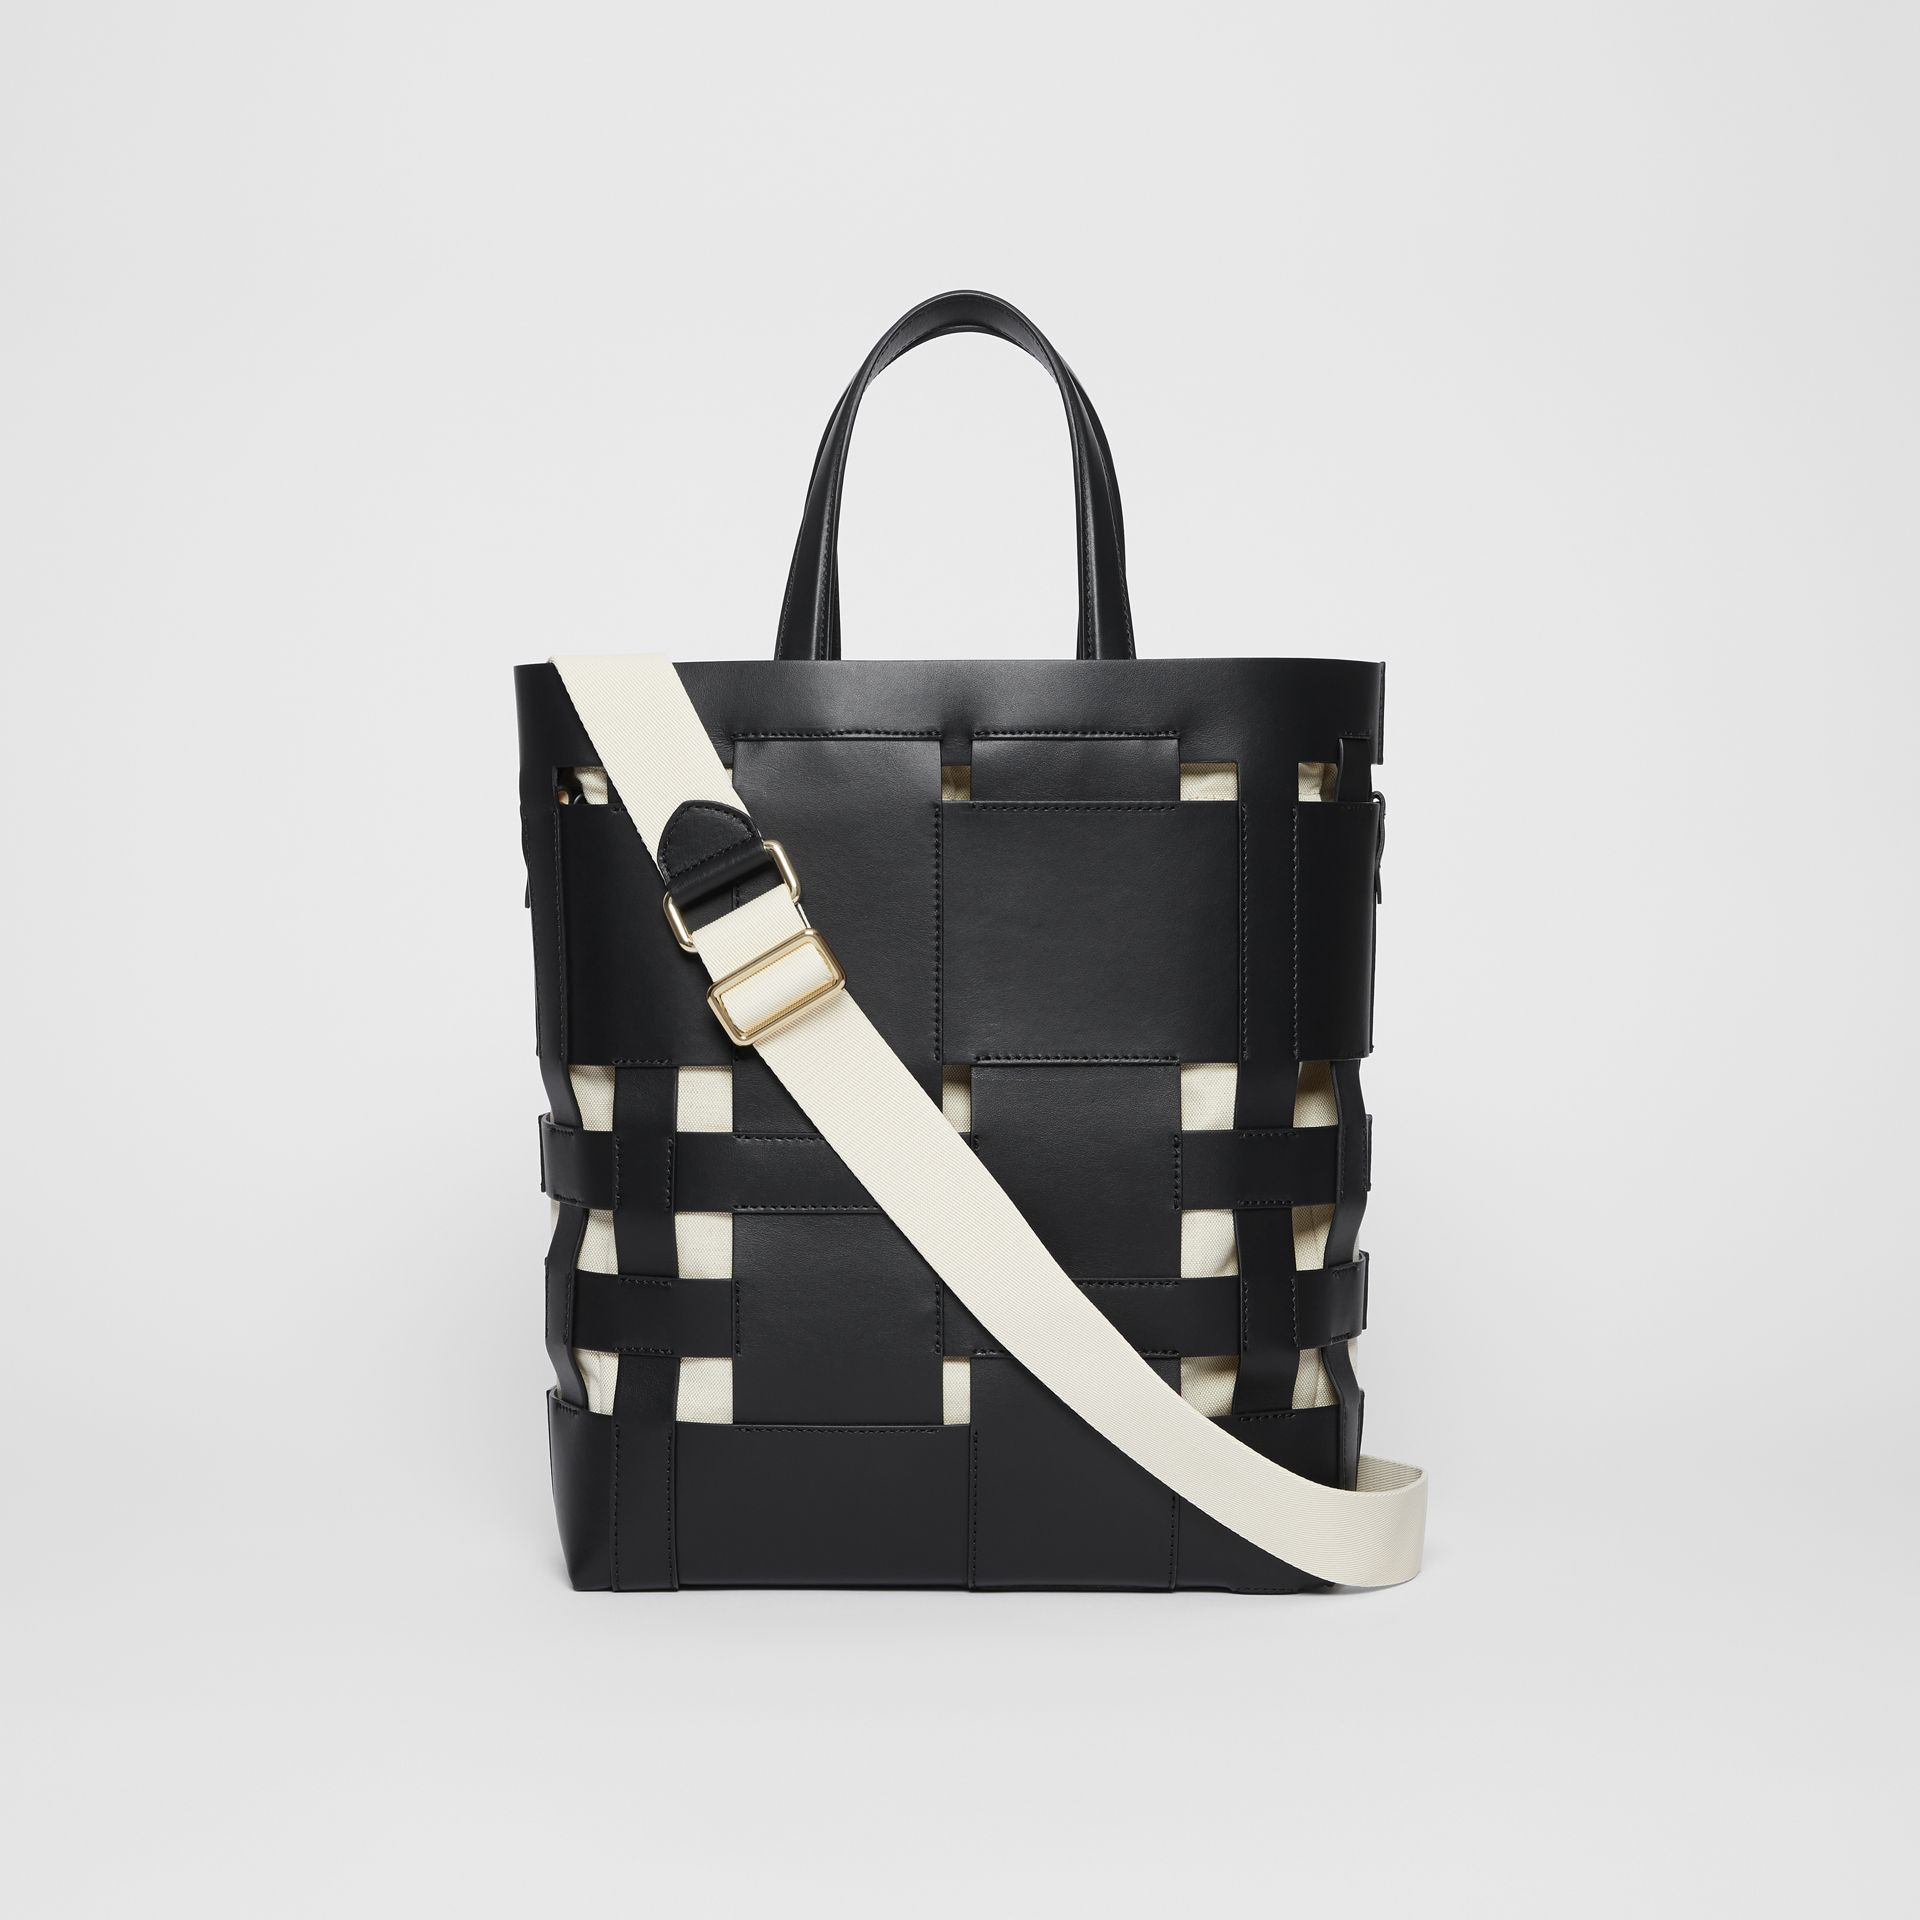 Medium Leather Foster Tote in Black - Women | Burberry Canada - gallery image 5